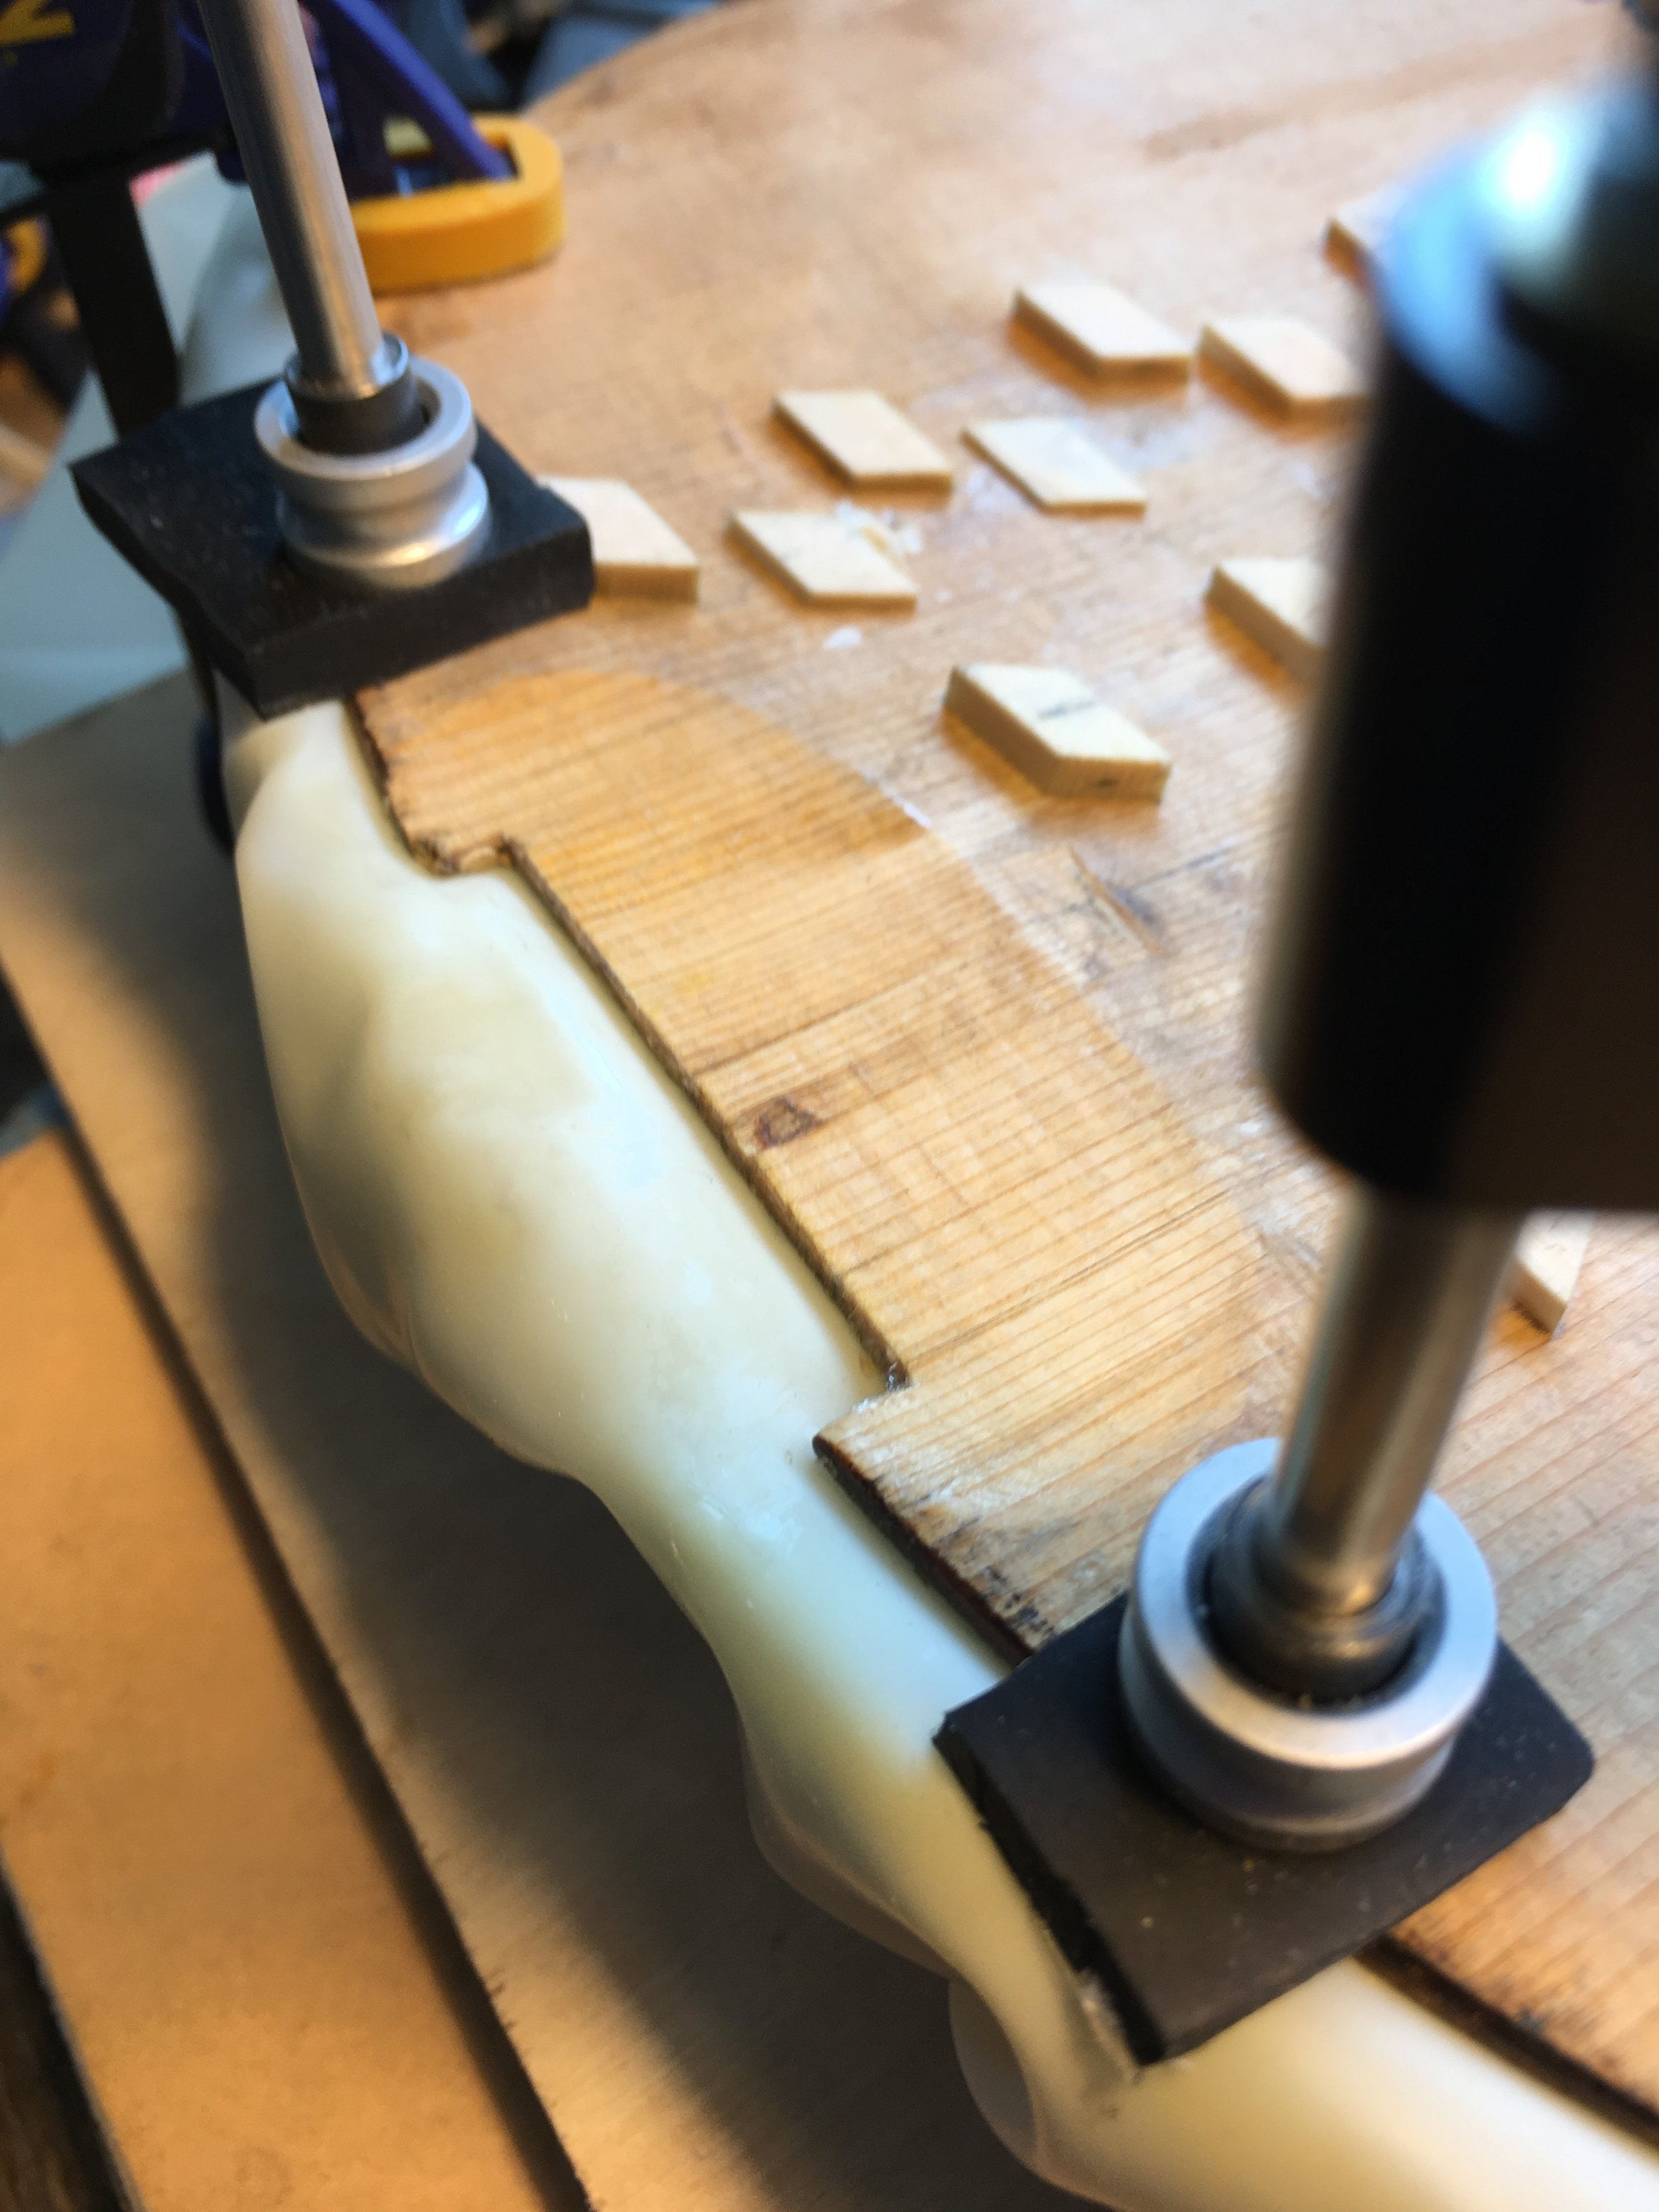 Patch beds are conservatively and precisely carved while the instrument's top is supported in a cast before fitting an inlaid patch .